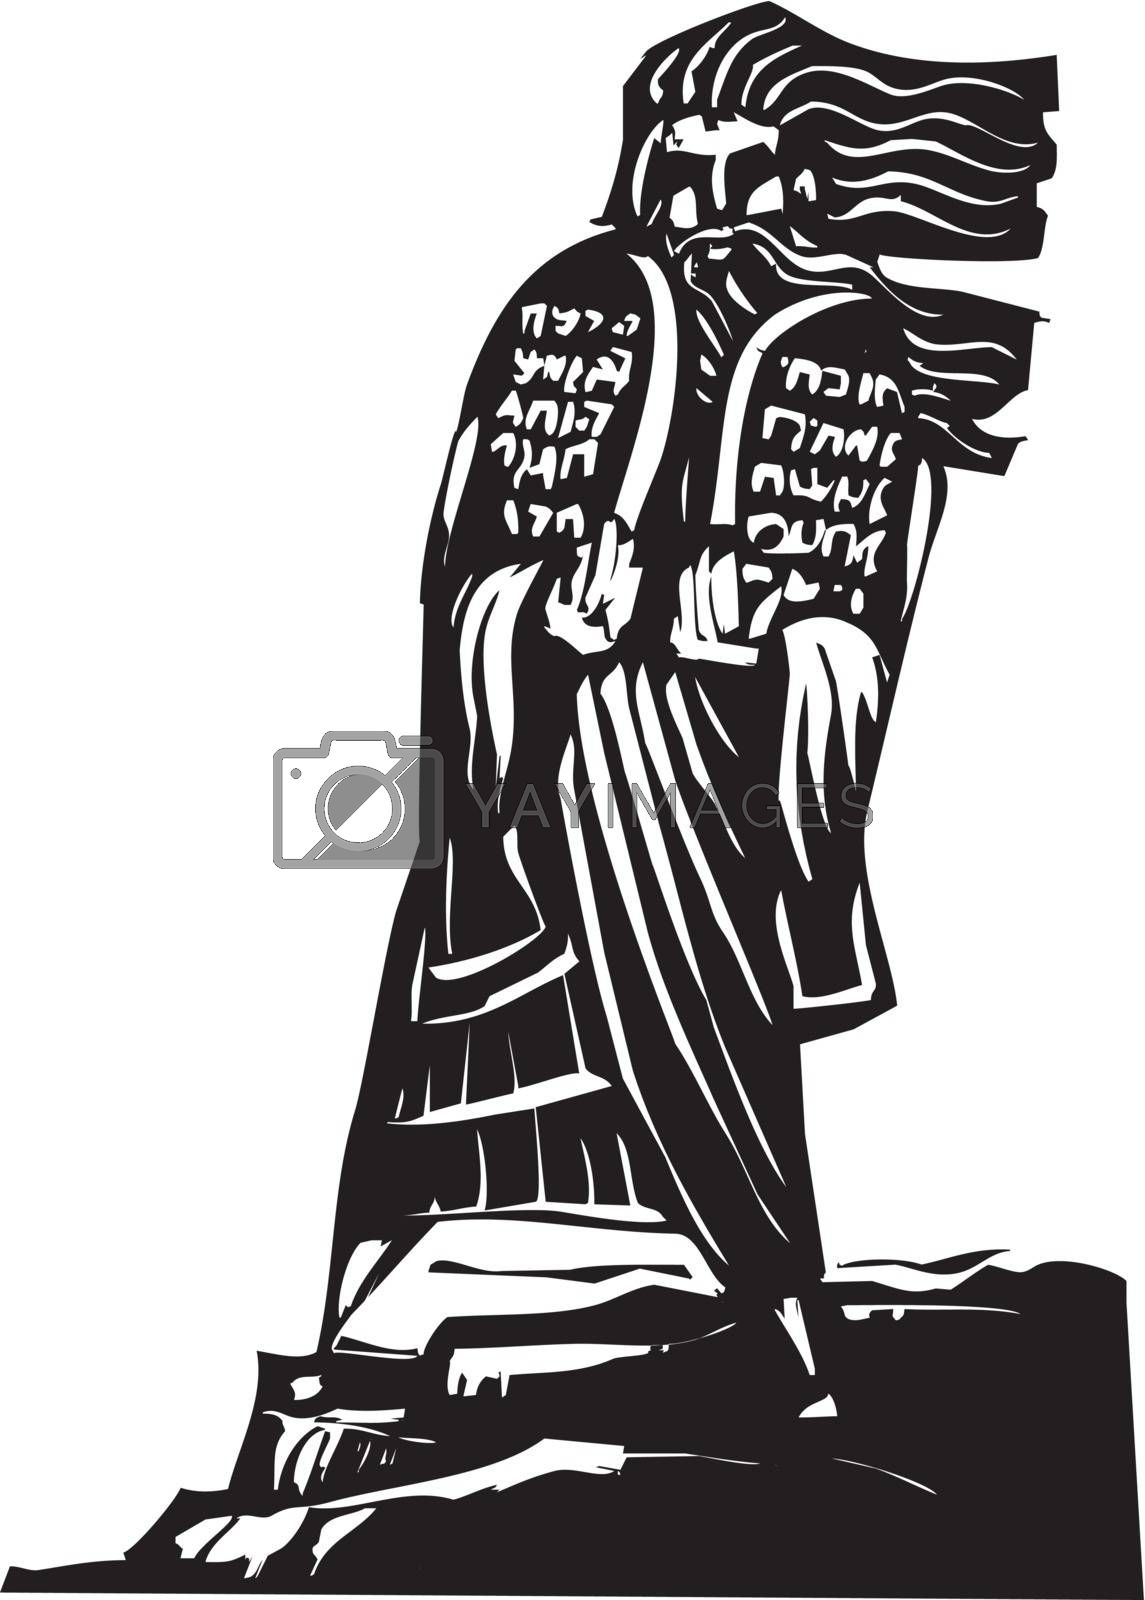 Woodcut style image of the Biblical Moses bringing the ten commandments down from the mountain.